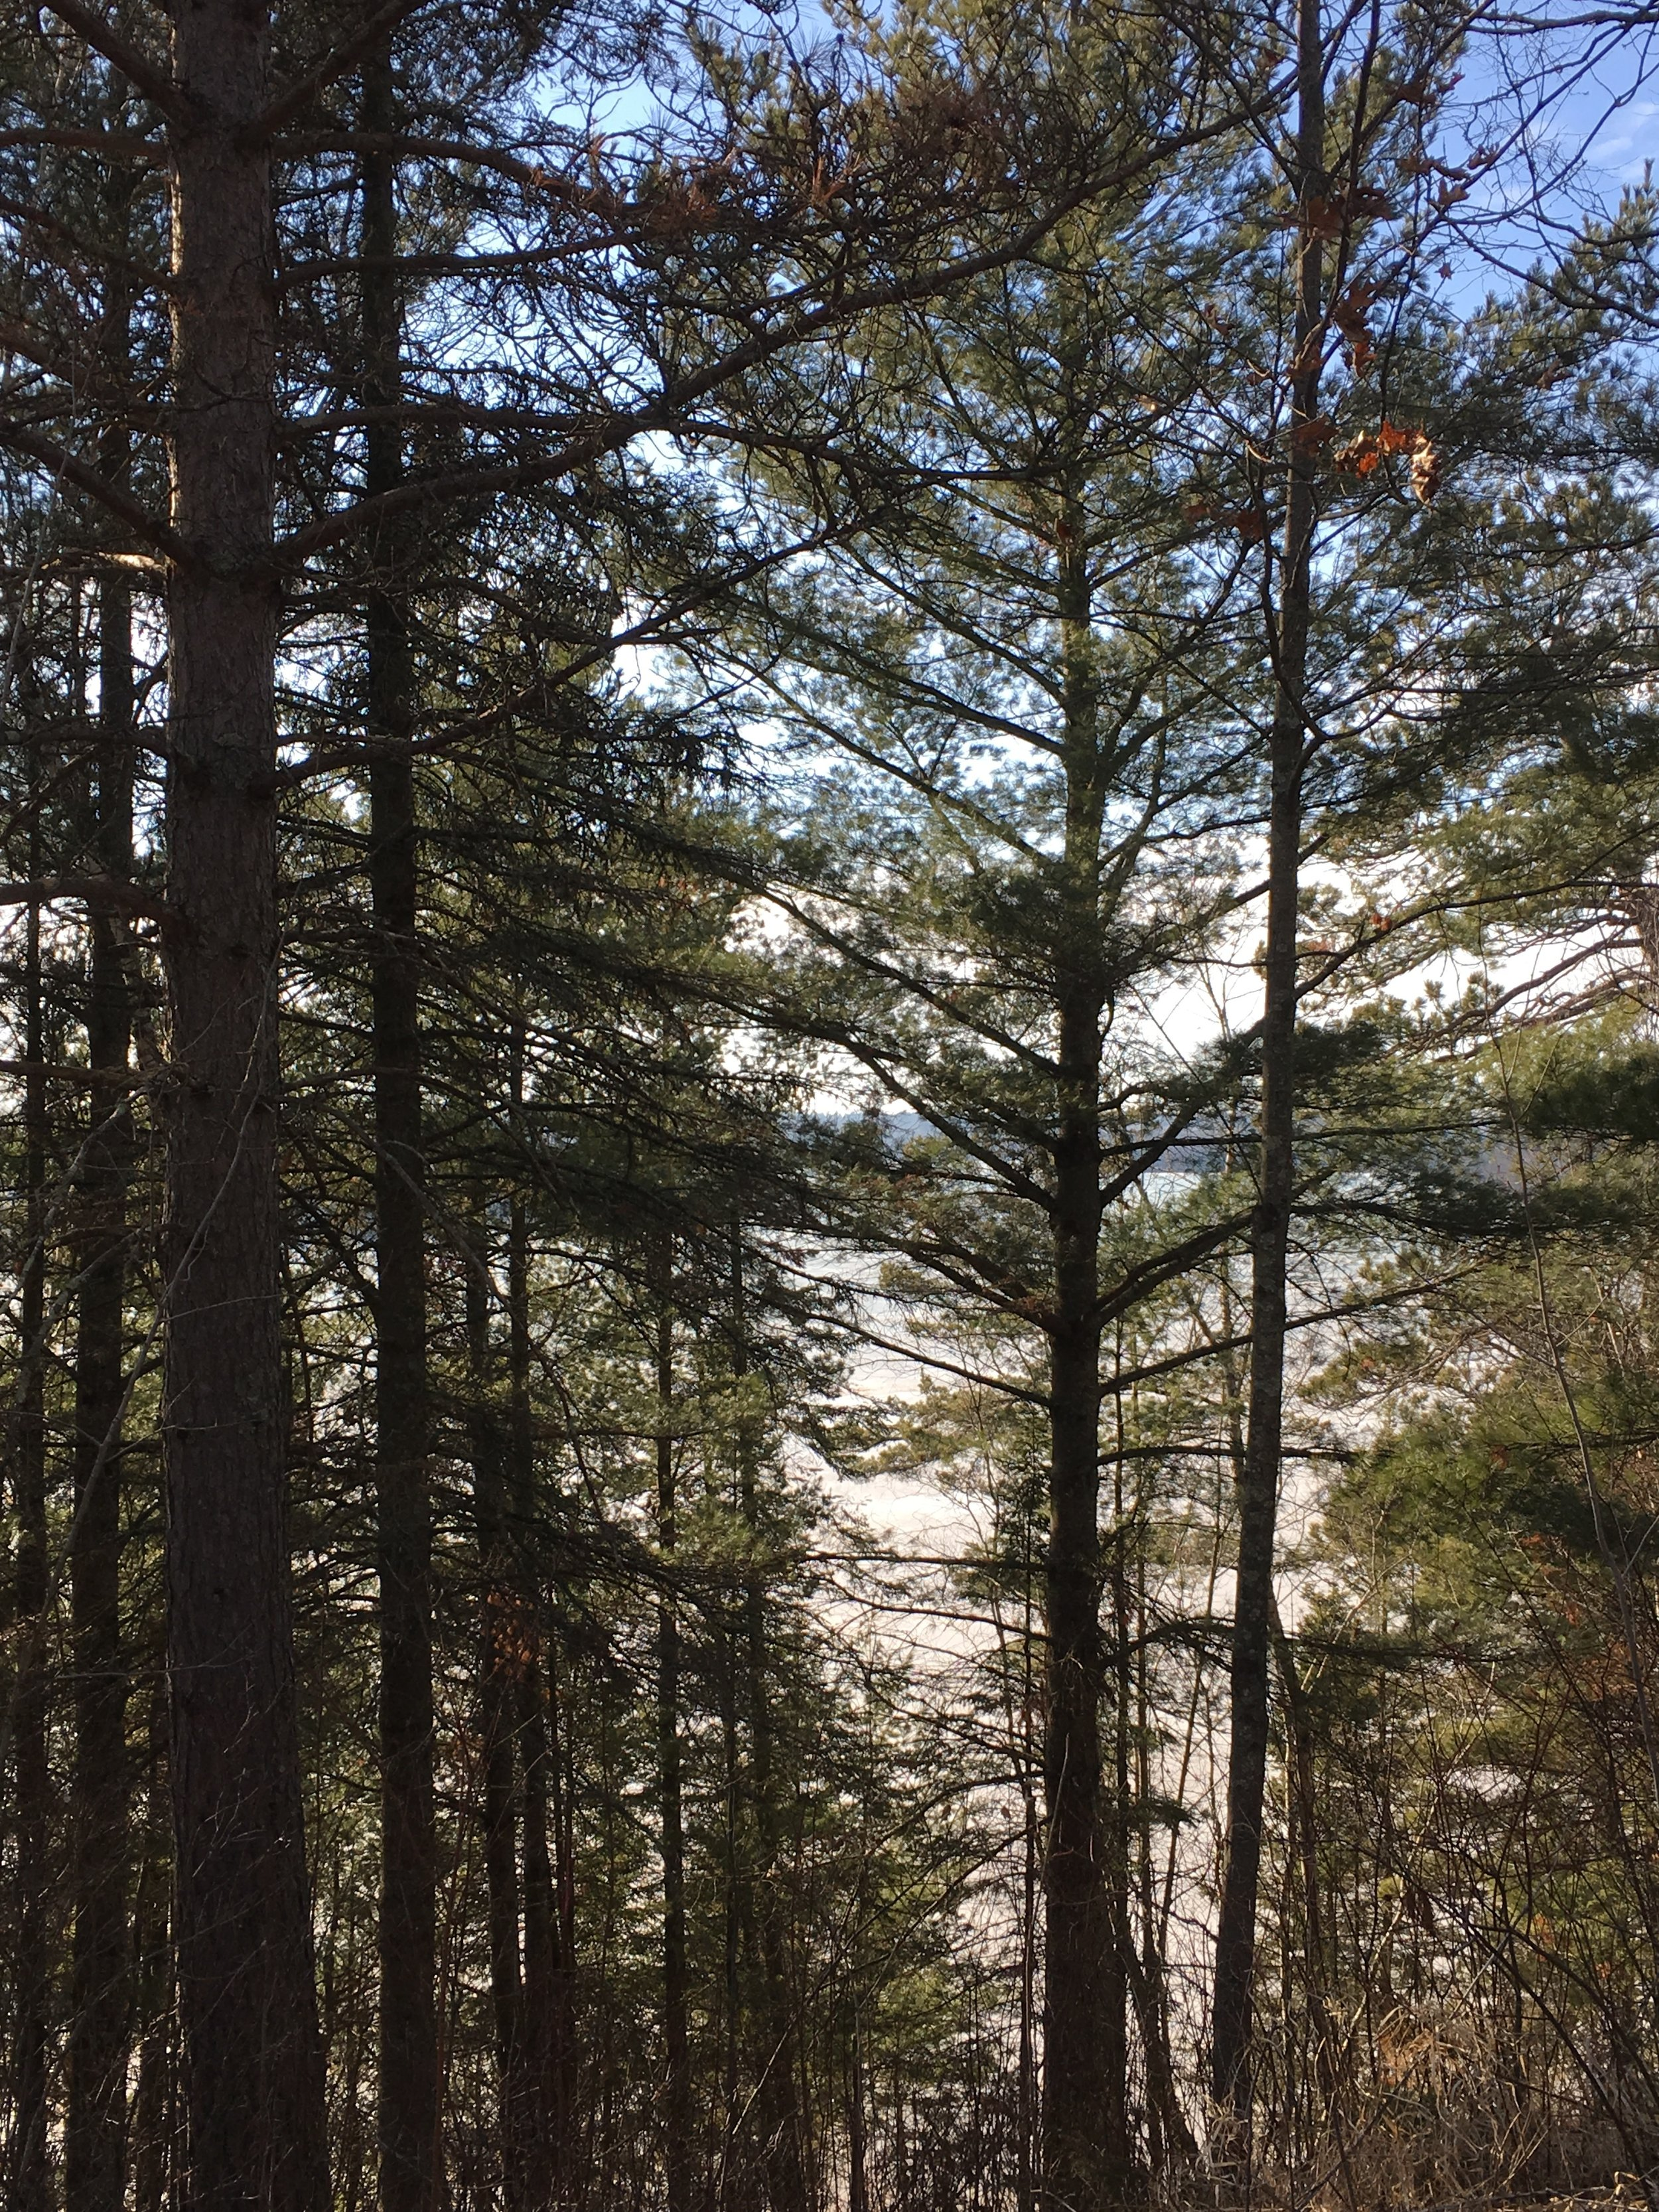 Pine forests of the Itasca State Park